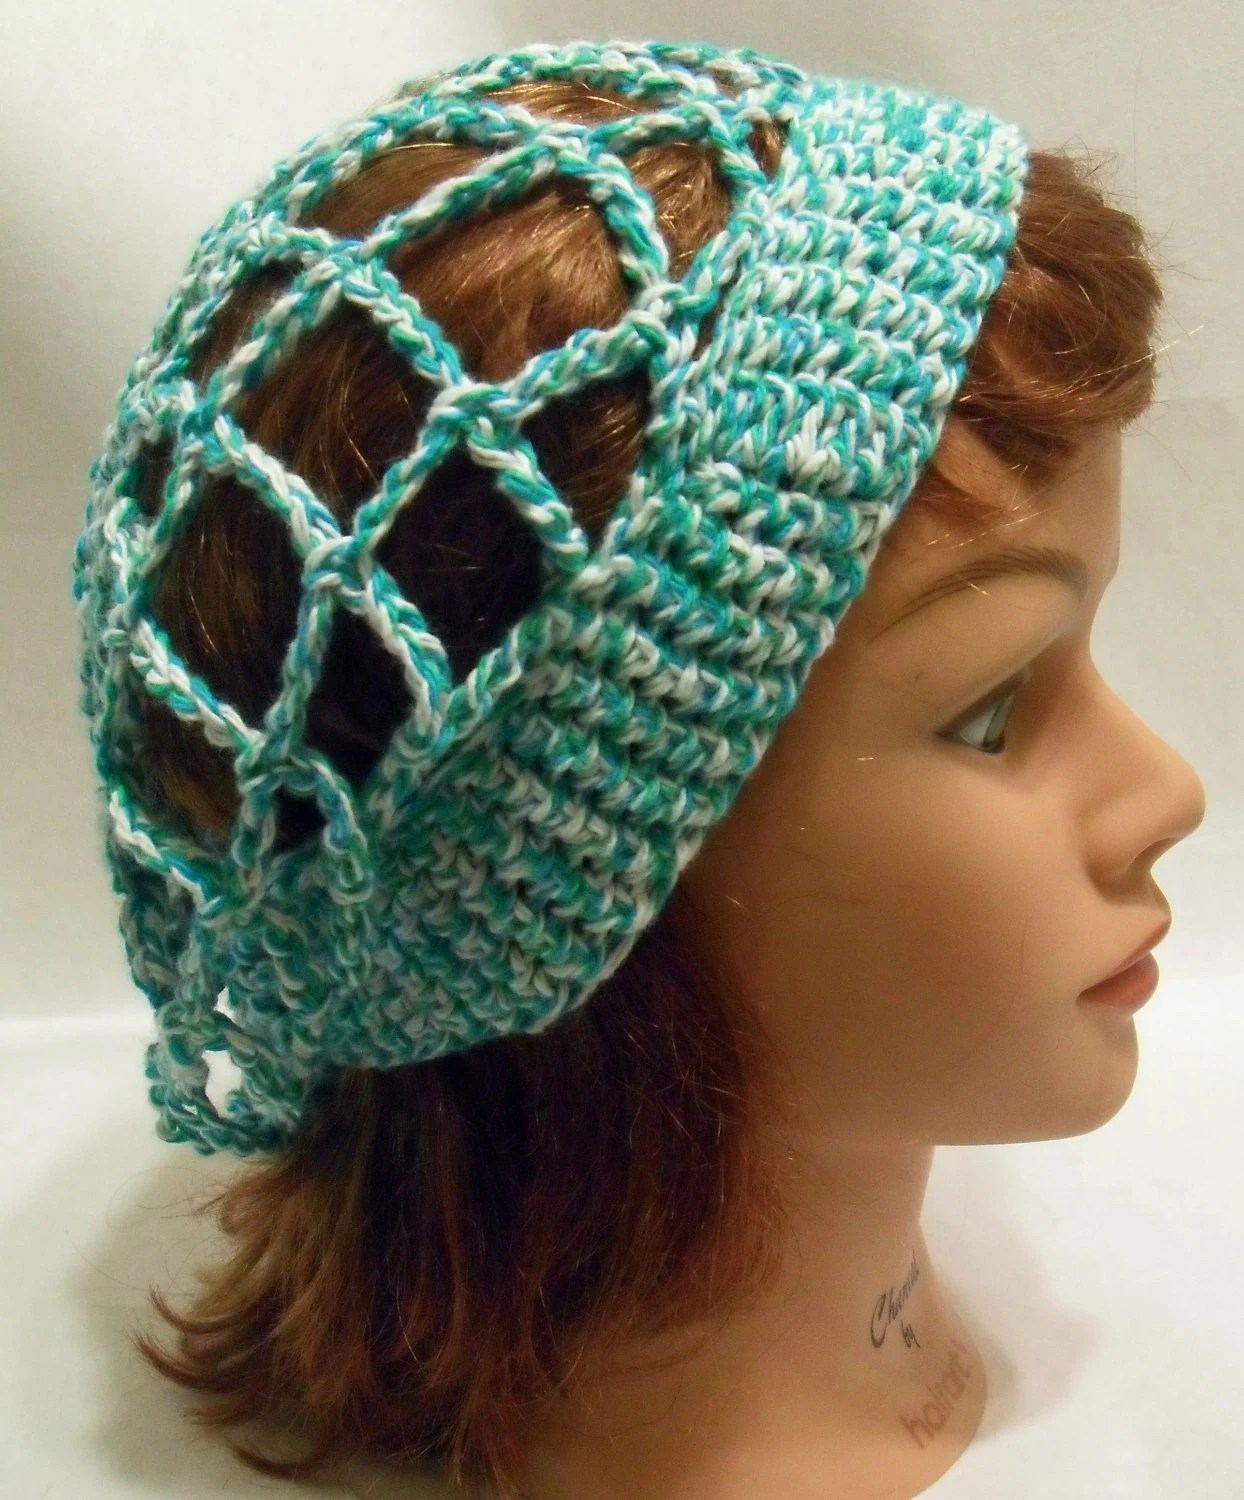 Crochet Mesh Snood Slouchy Hat in Blue and White XSmall / Small - AddSomeStitches